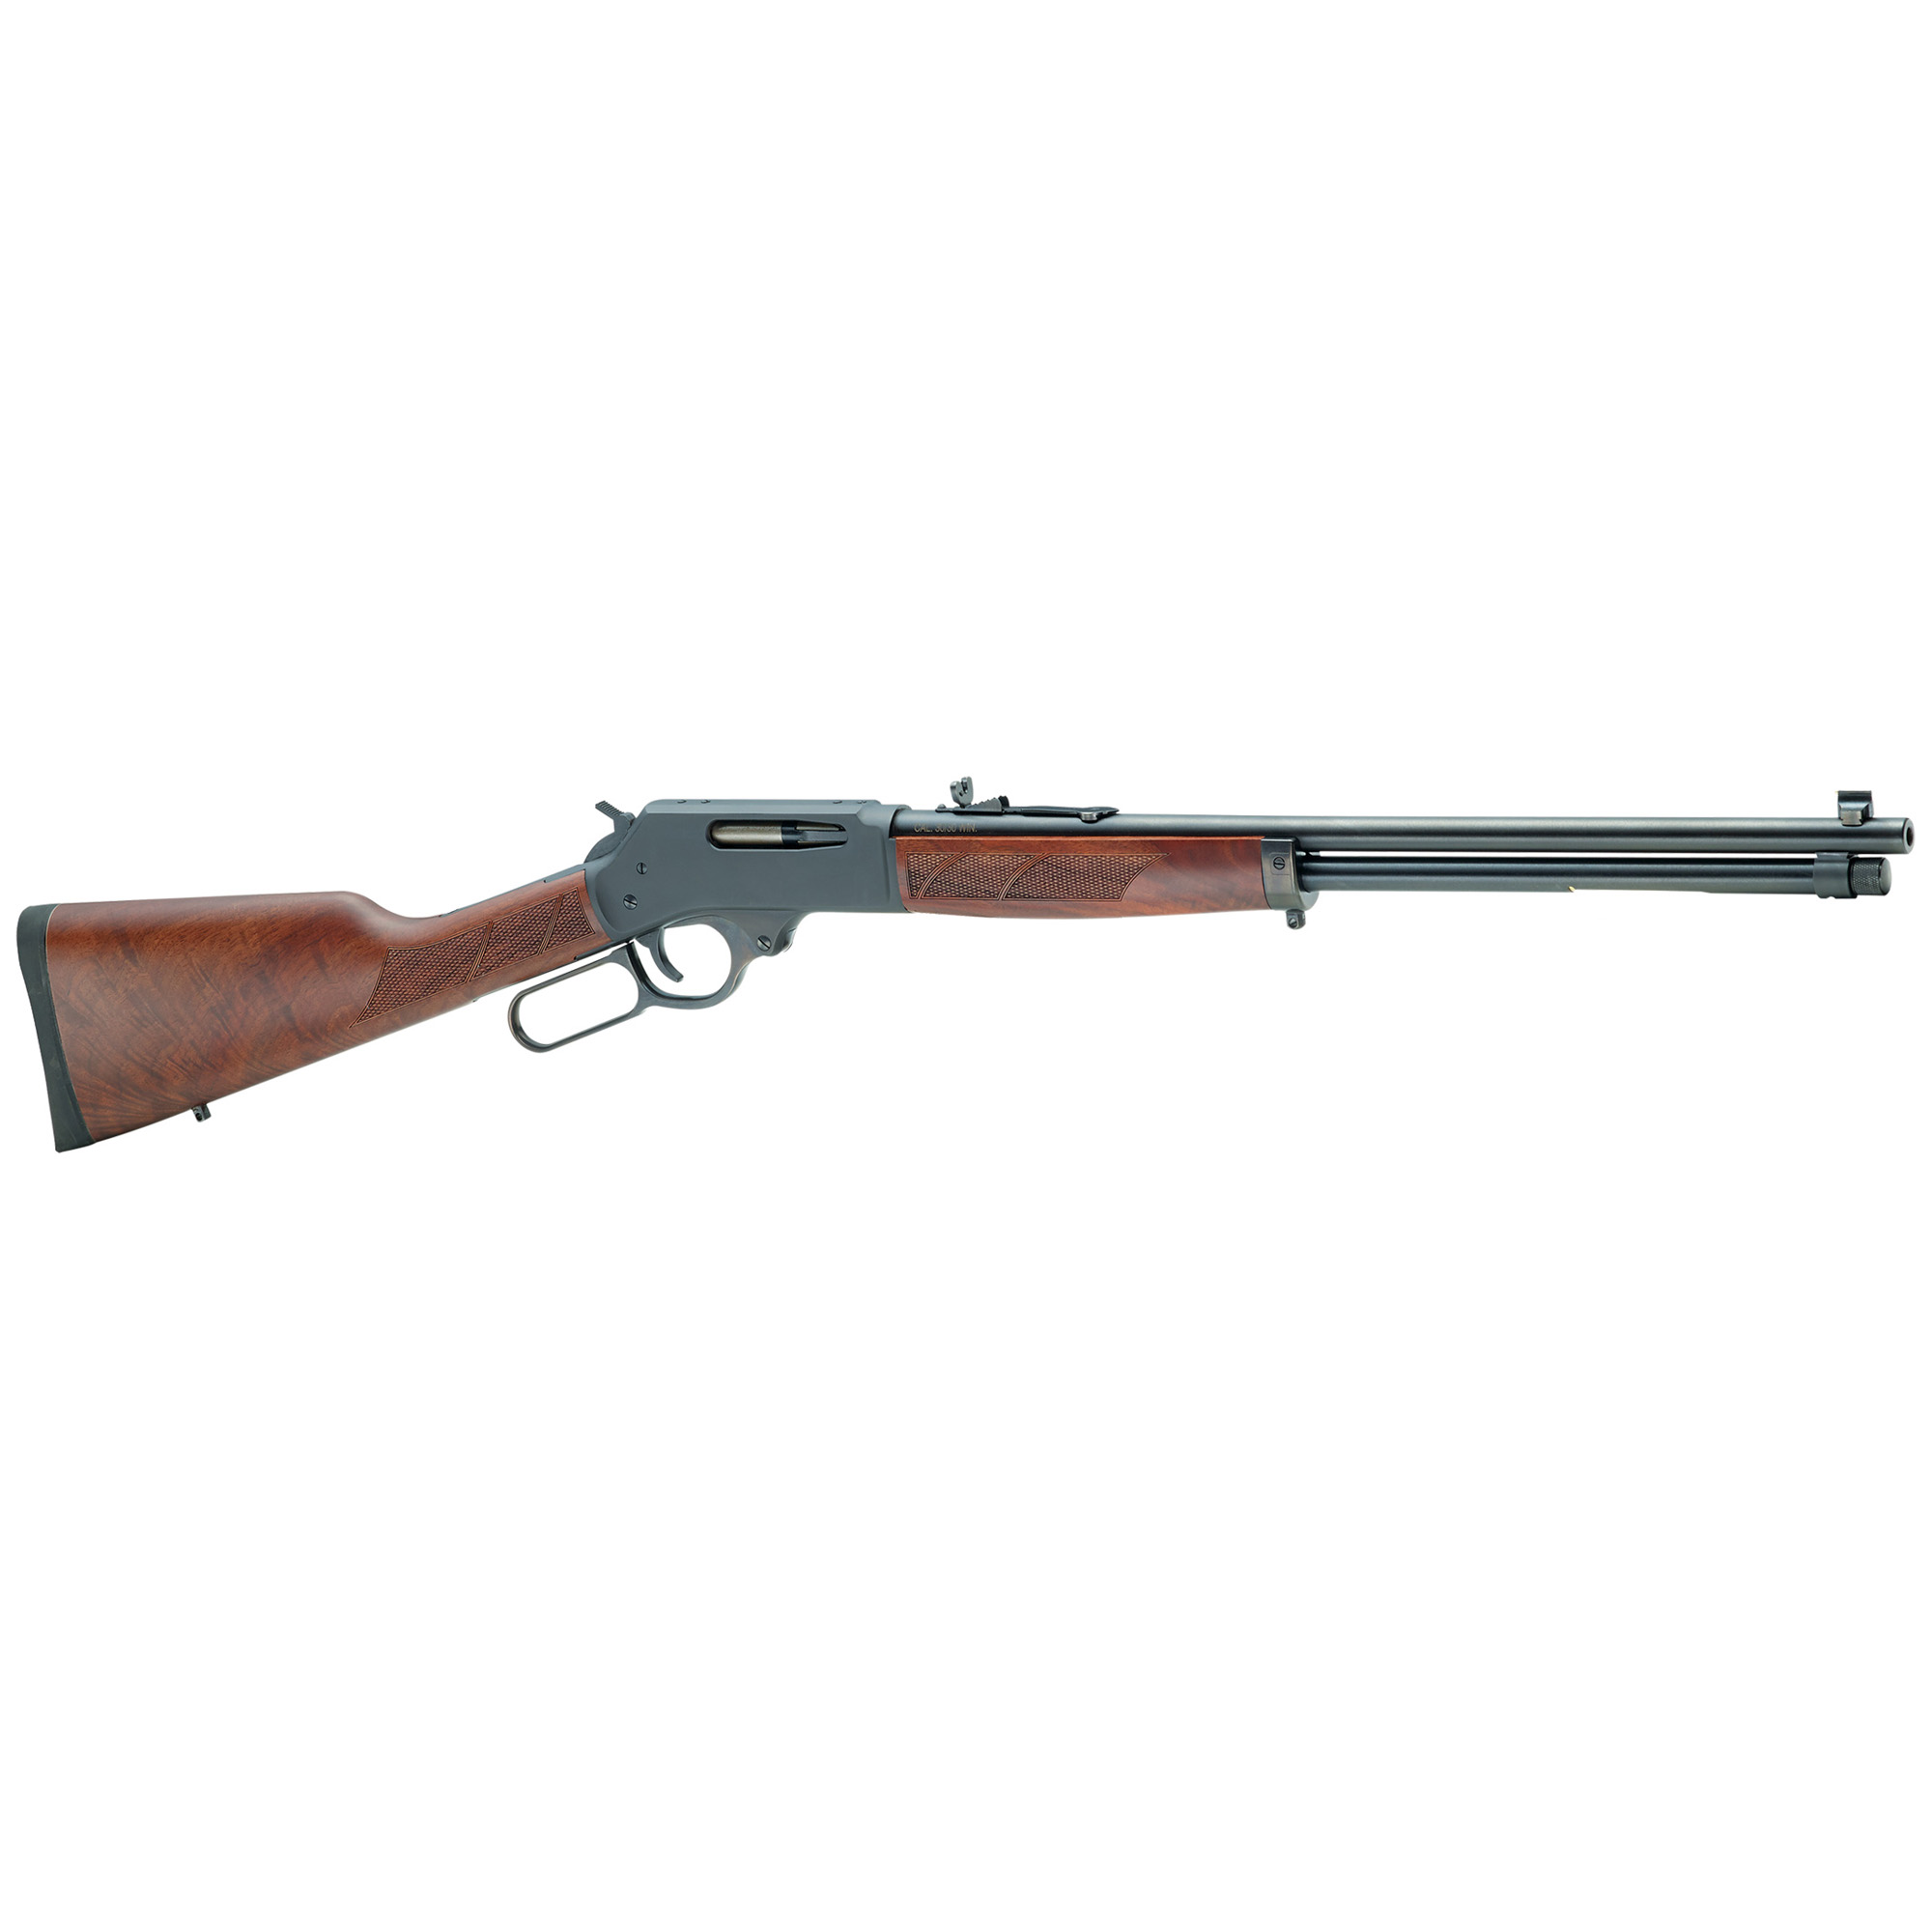 """From the Northwoods to the Texas hill country and in every deer camp and lodge in between"""" the .30-30 rifle remains the perennial choice of whitetail hunters. Henry"""" America's most storied rifle maker"""" now offers a classic rifle chambered for this legendary caliber."""